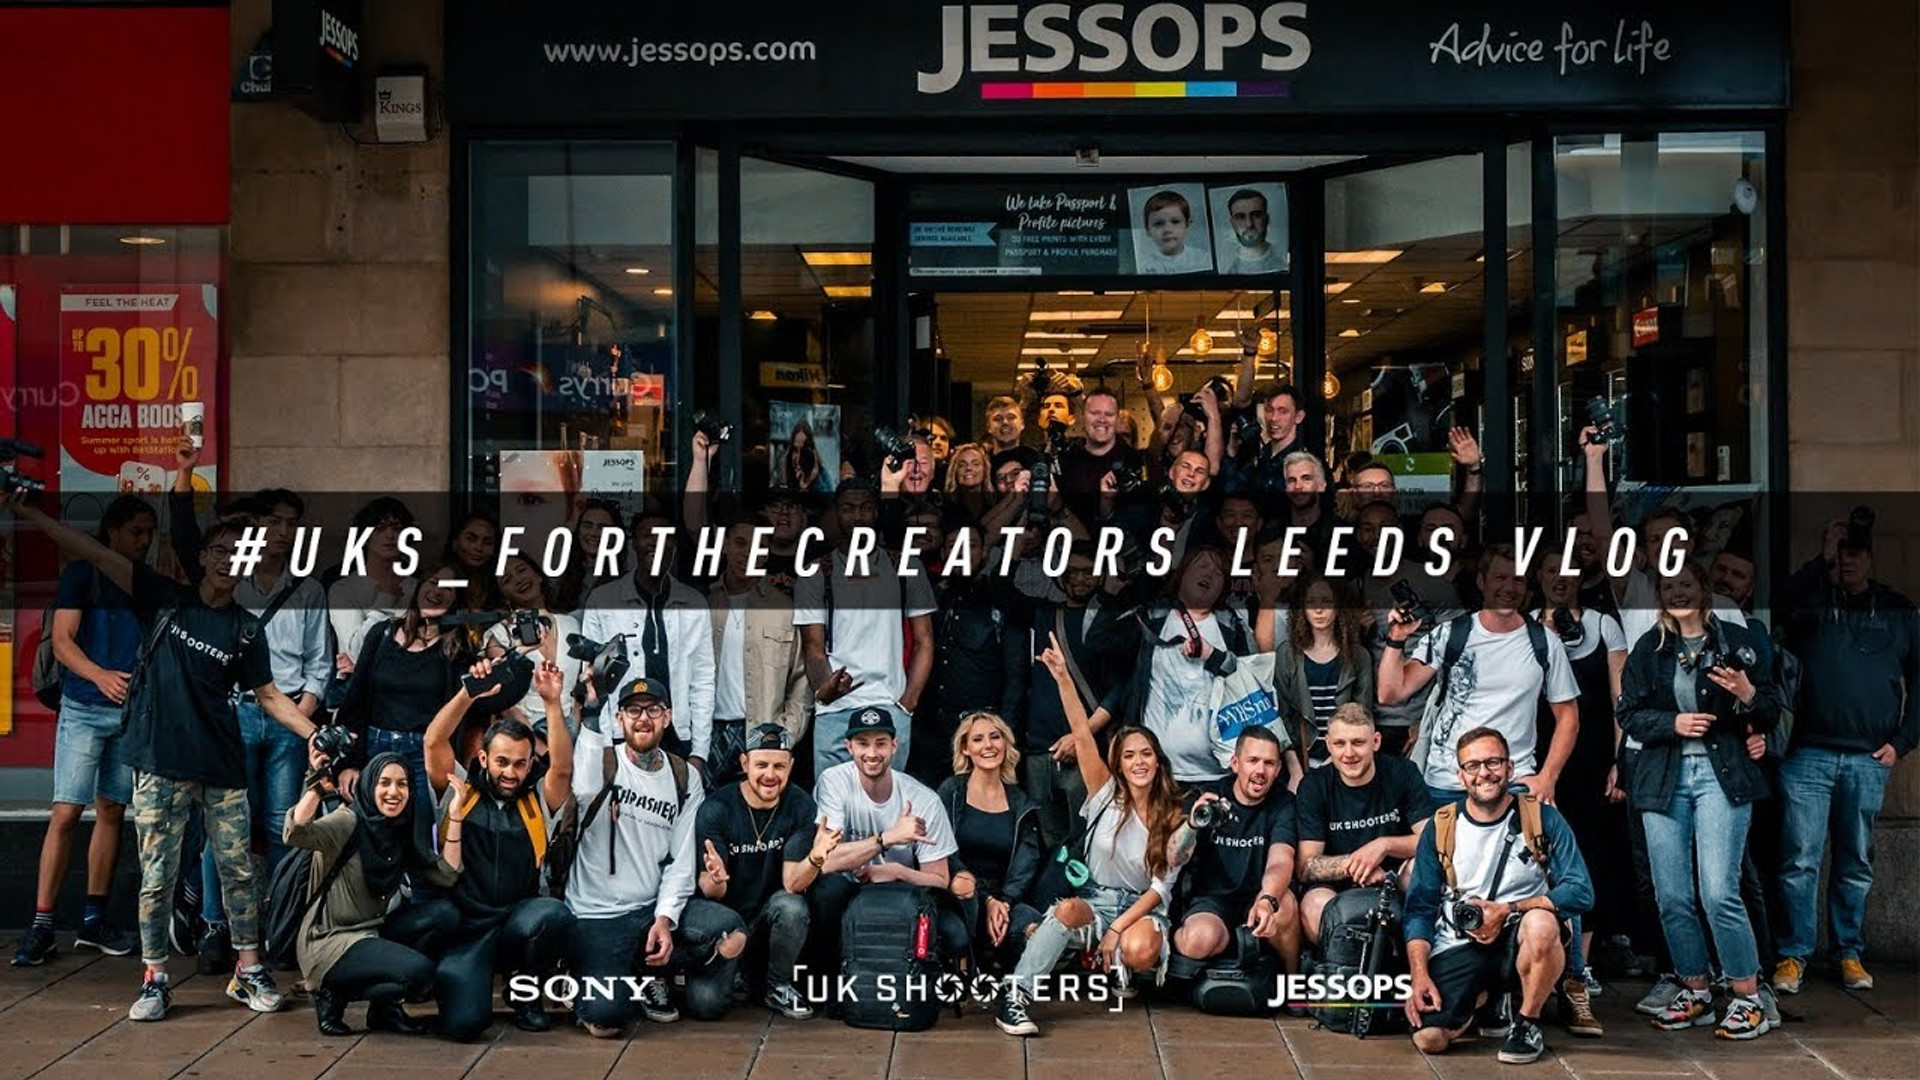 Leeds Vlog, UK